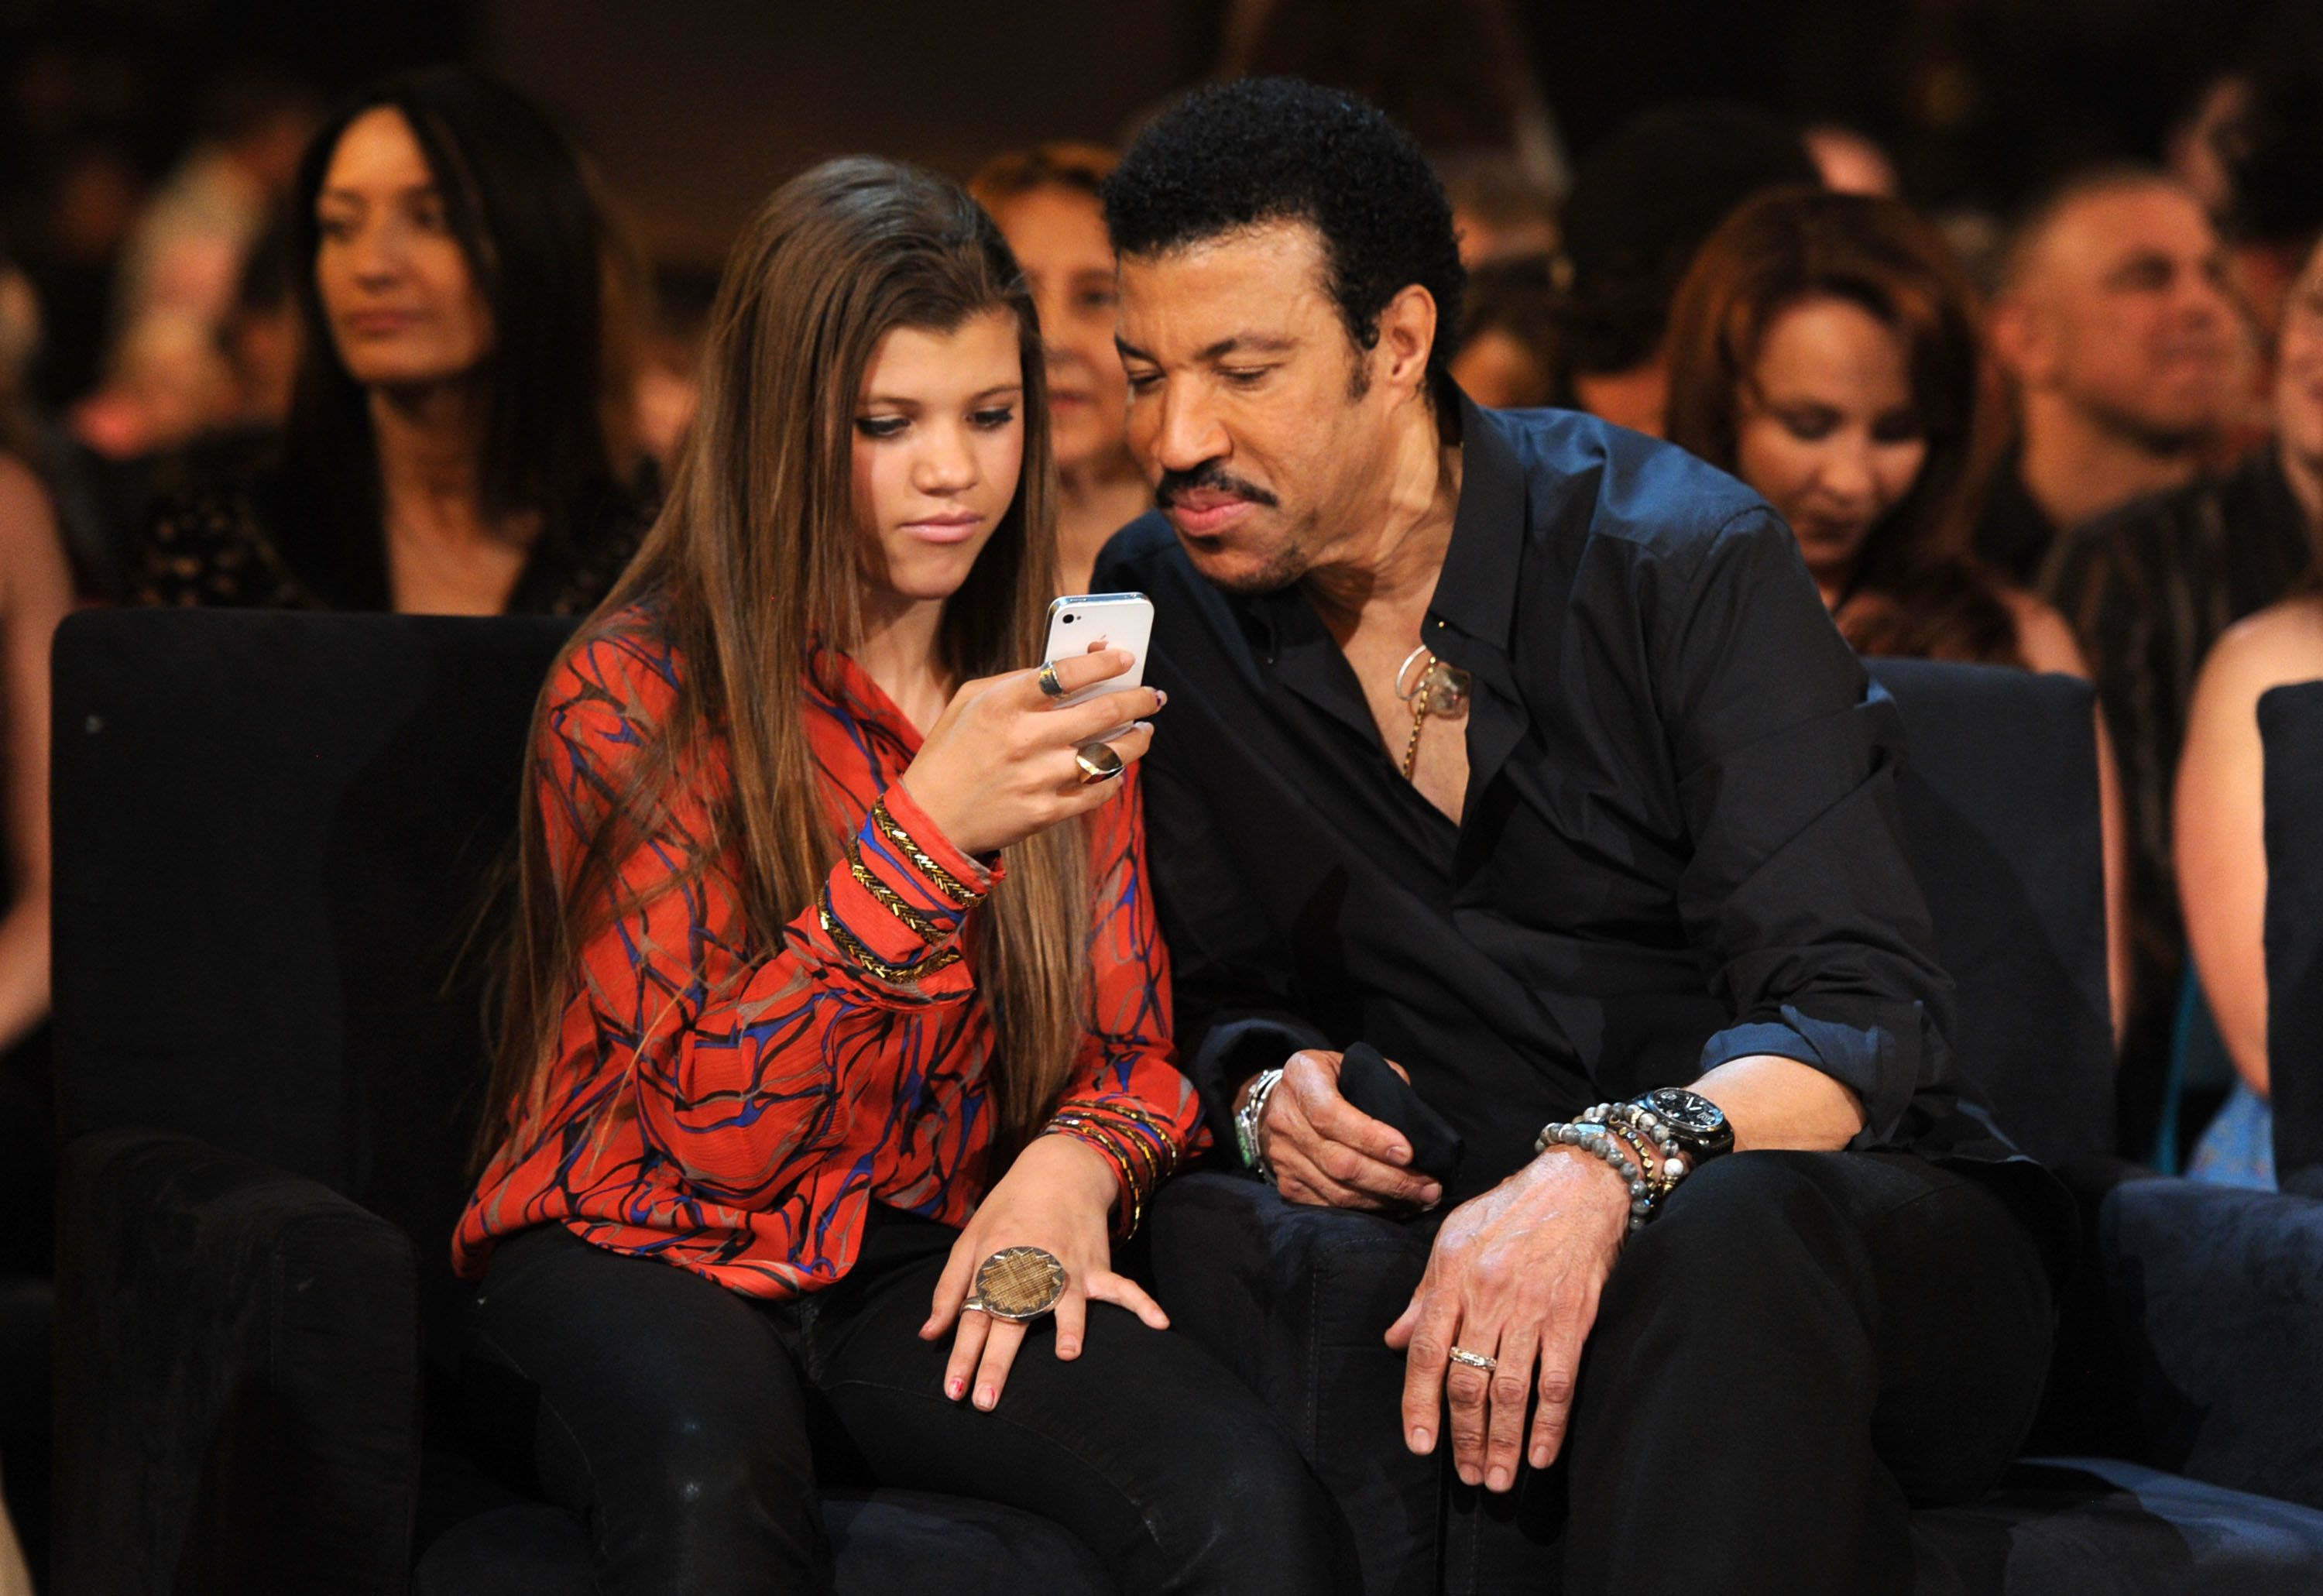 LAS VEGAS, NV - APRIL 02:  Sofia Richie and singer Lionel Richie attend the Lionel Richie and Friends in Concert presented by ACM held at the MGM Grand Garden Arena on April 2, 2012 in Las Vegas, Nevada.  (Photo by Kevin Winter/ACMA2012/Getty Images for ACM)